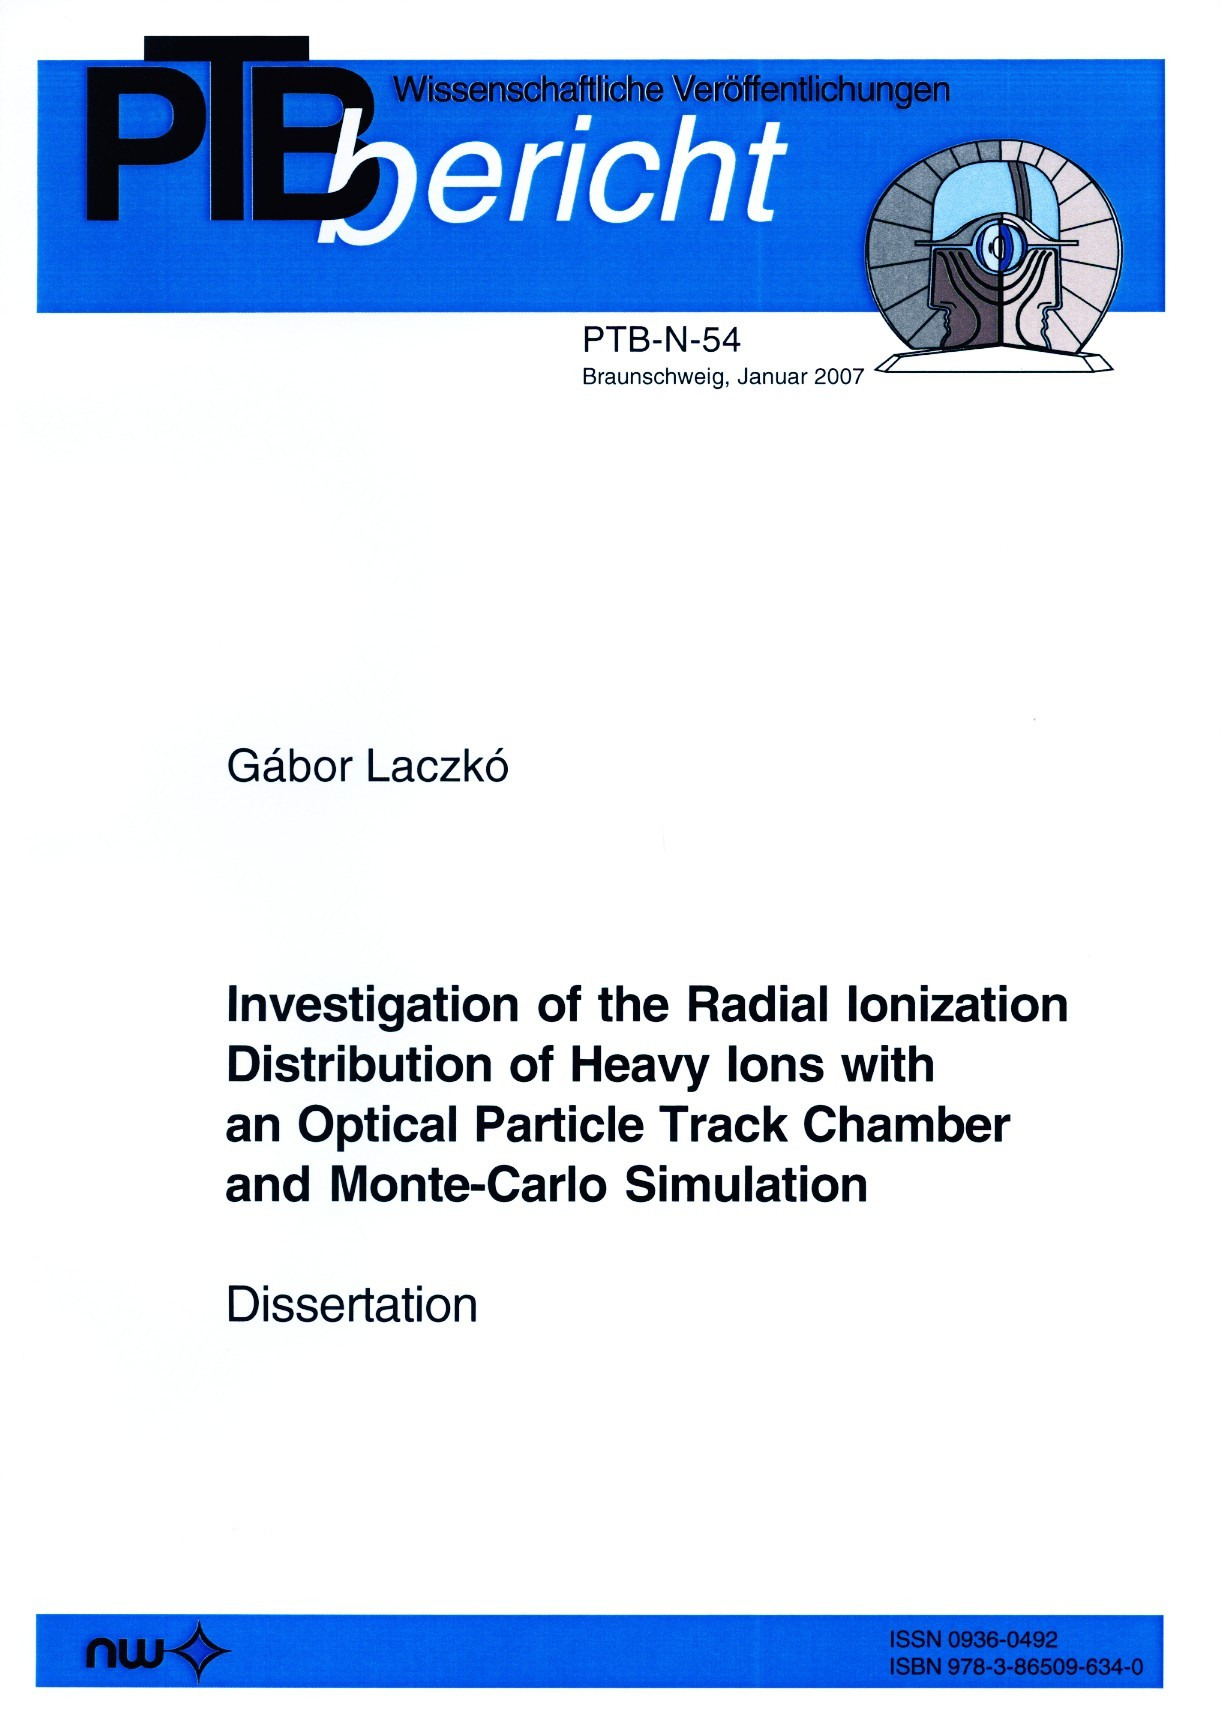 Investigation of the Radial Ionization Distribution of Heavy Ions with an Optical Particle Track Chamber and Monte-Carlo Simulation (Dissertation)